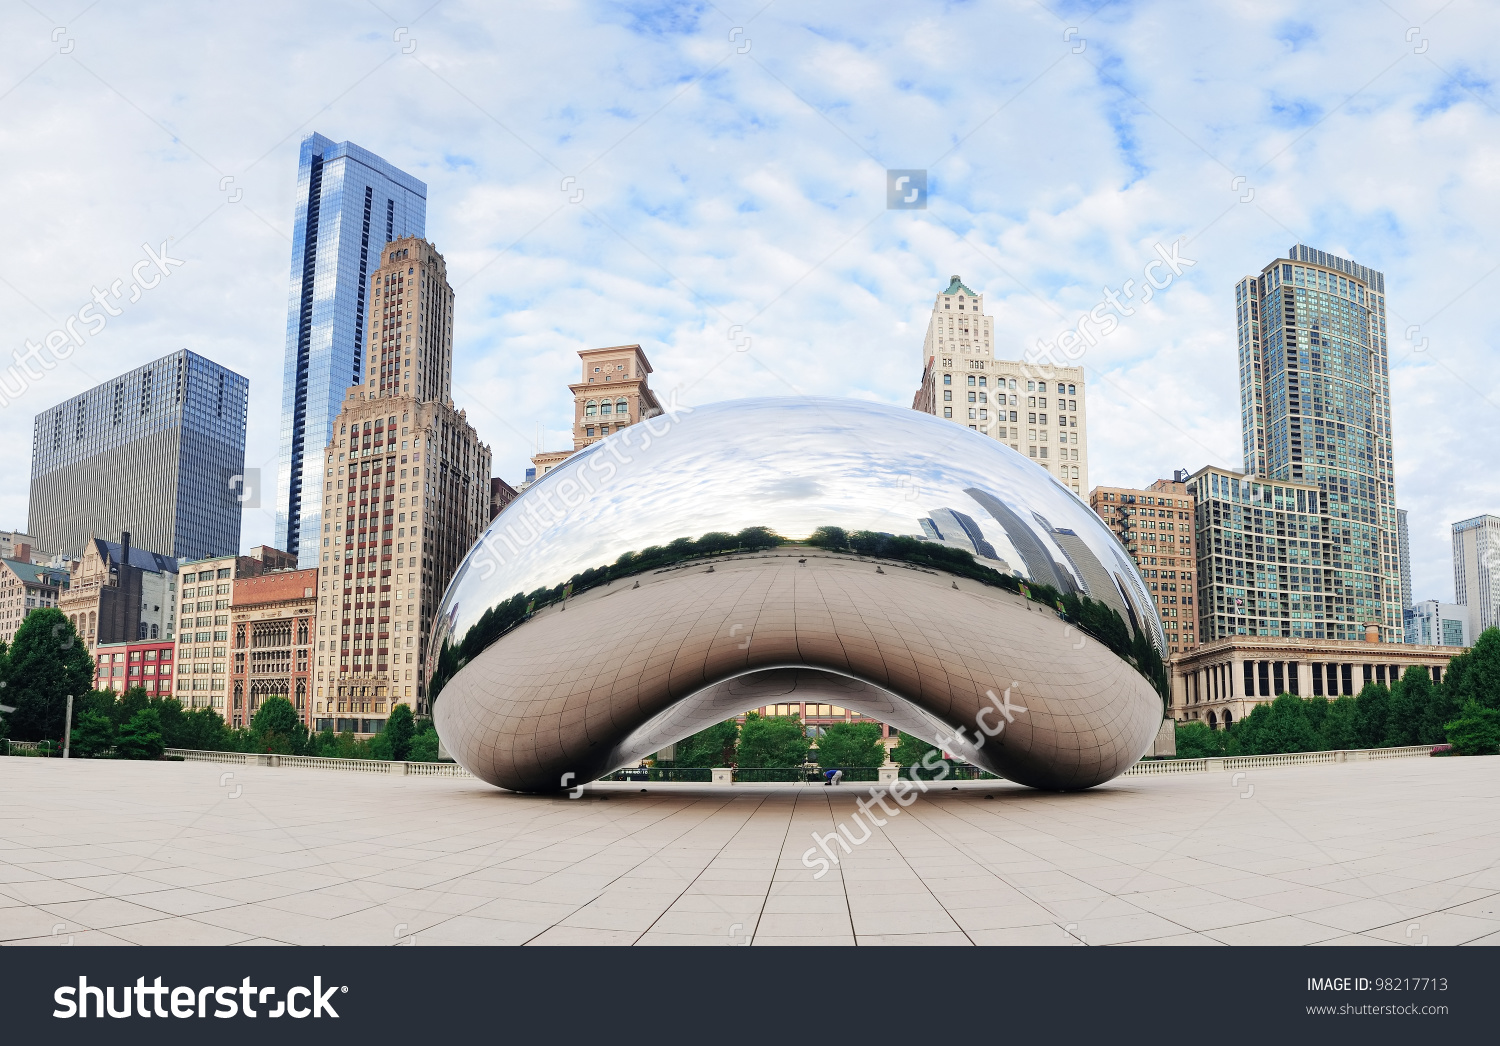 Chicago Il Oct 6 Cloud Gate Stock Photo 98217713.